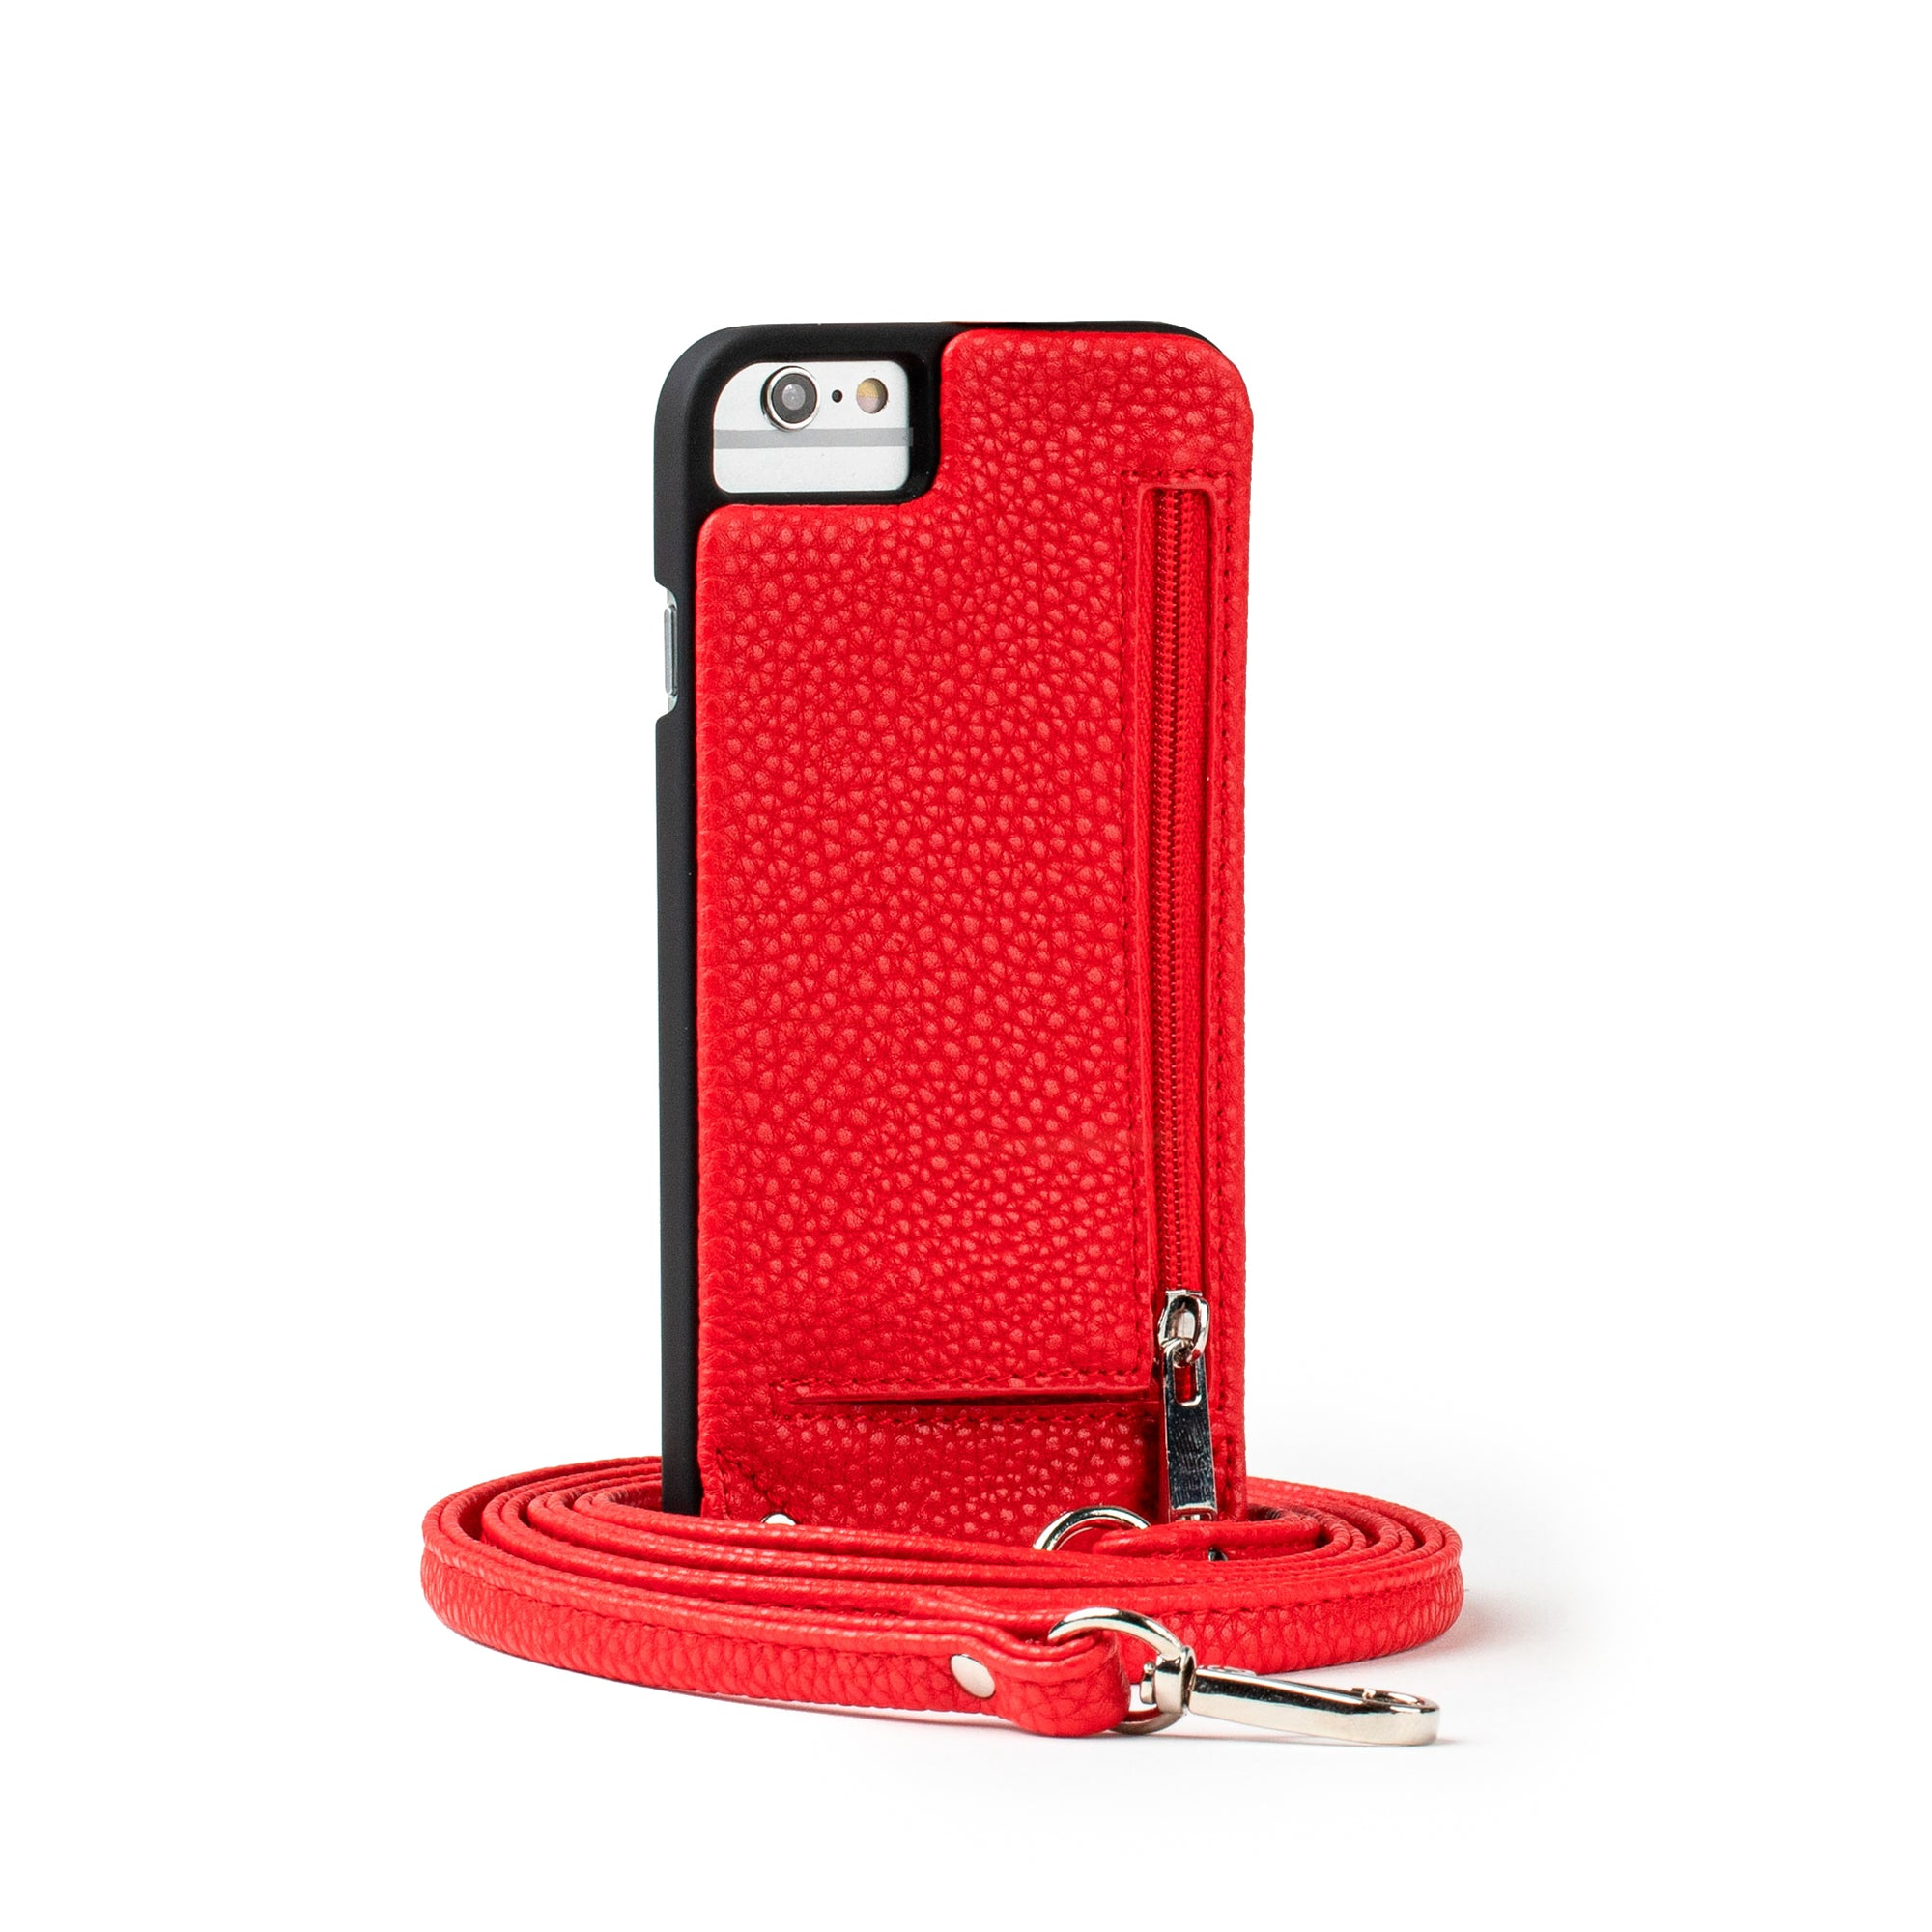 Scarlett - iPhone Carrying Case for 6 / 6s / 7 / 8